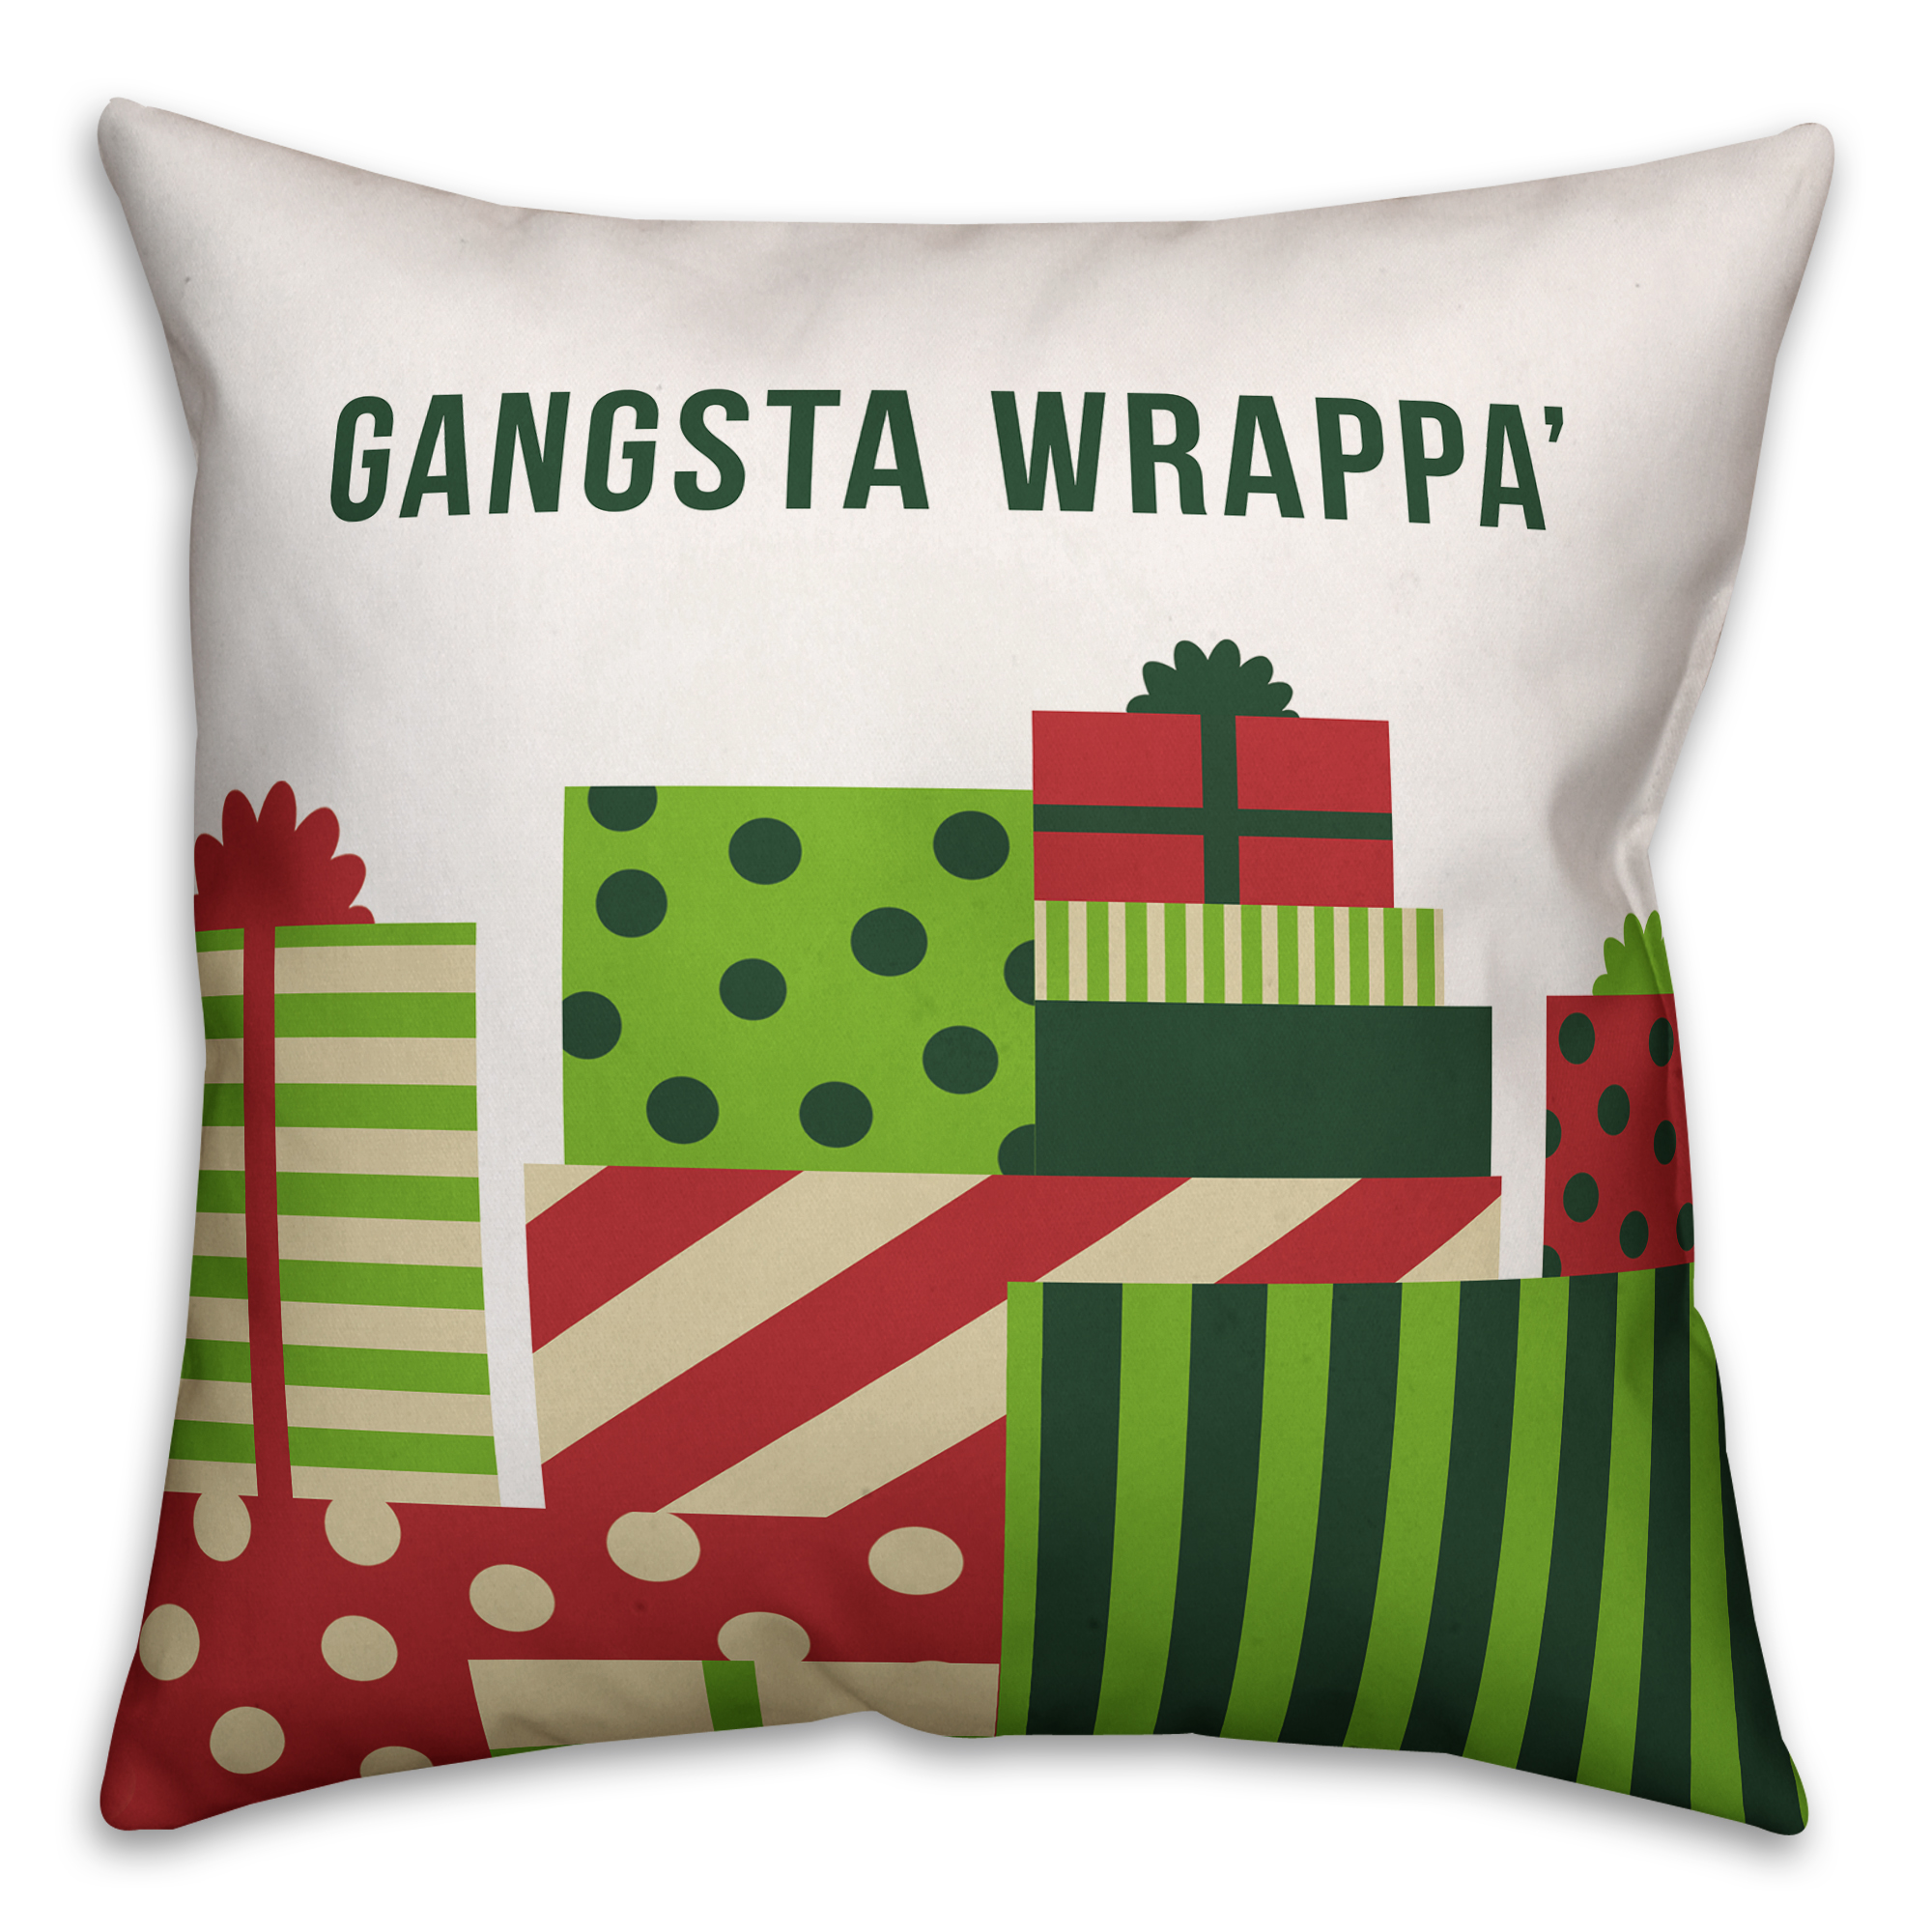 Gangsta Wrappa 16x16 Spun Poly Pillow